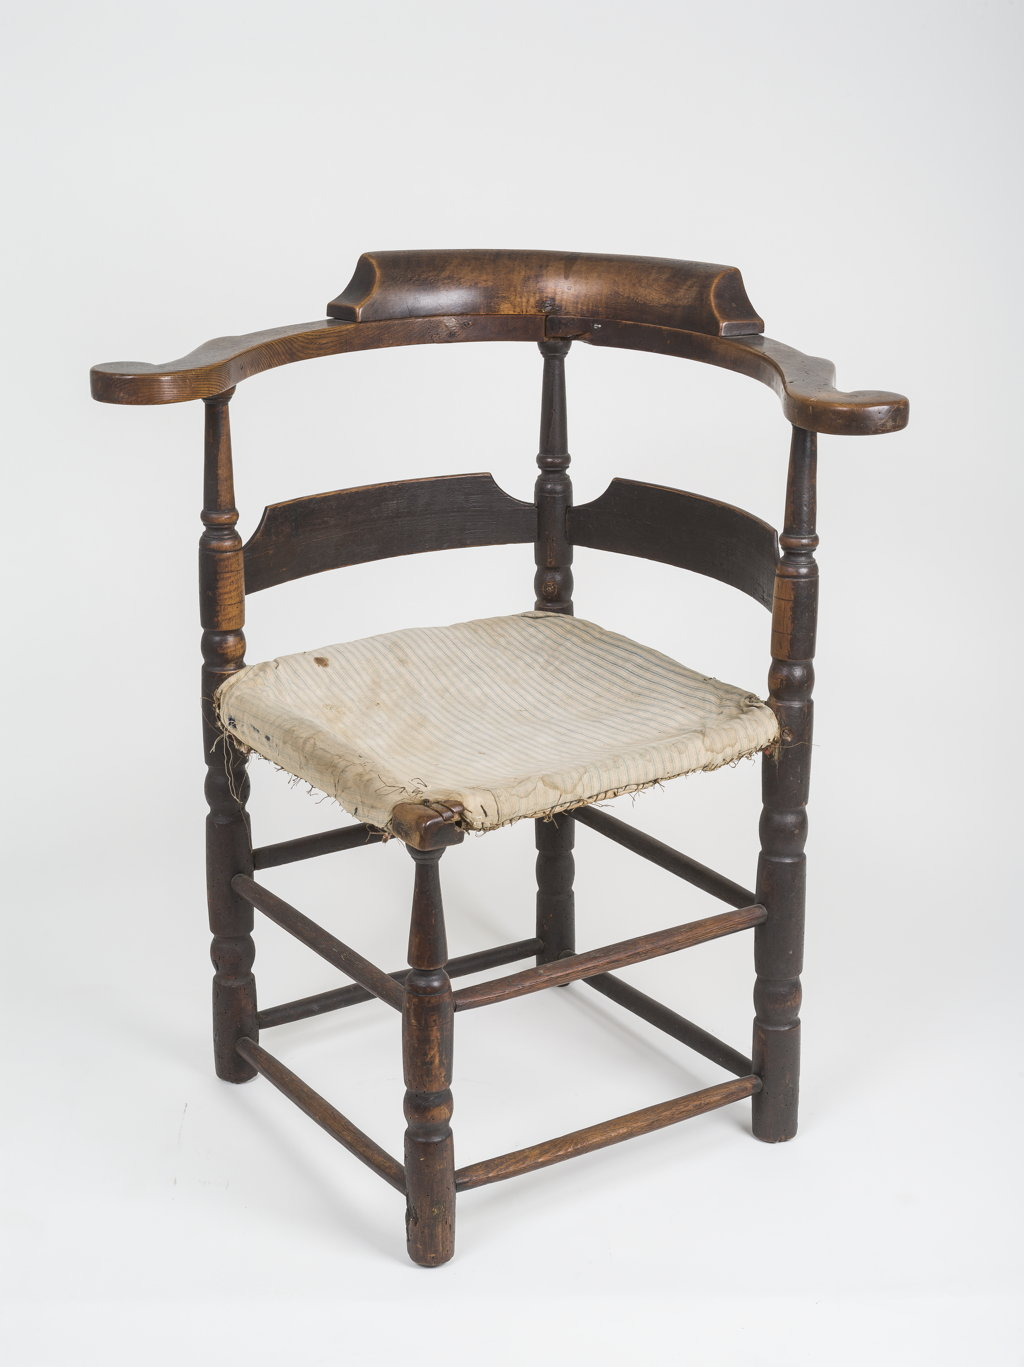 A fine William and Mary corner chair